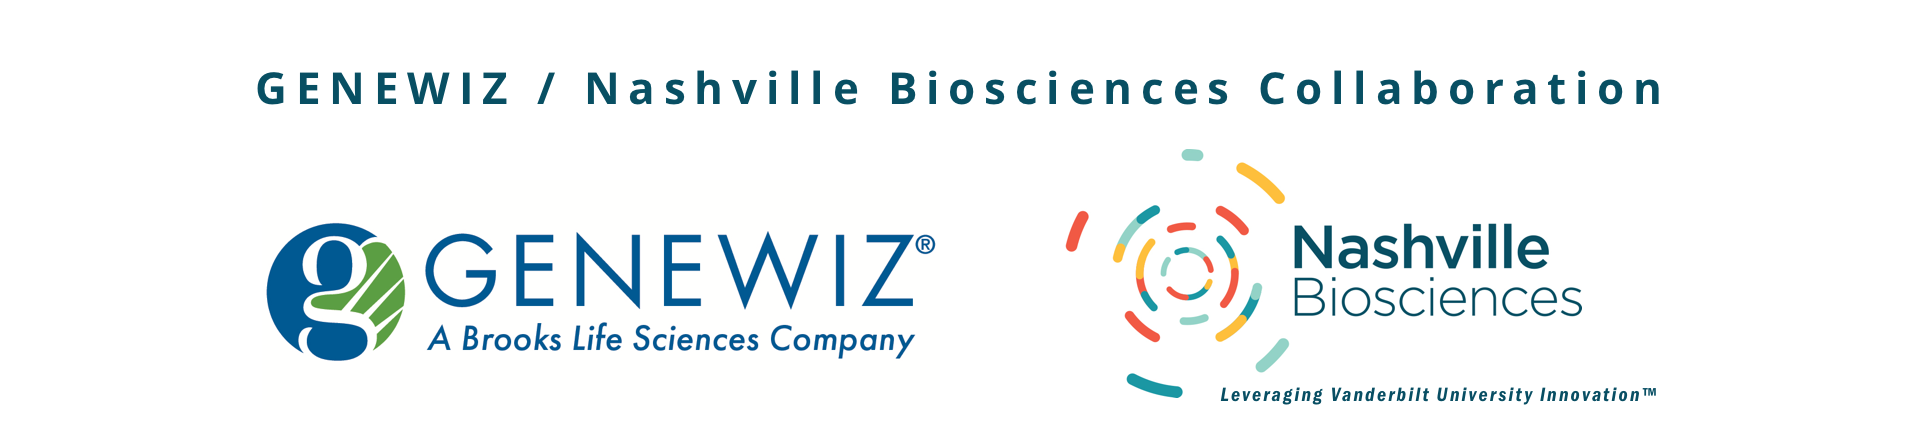 Nashville_Biosciences_LP_2.8.19